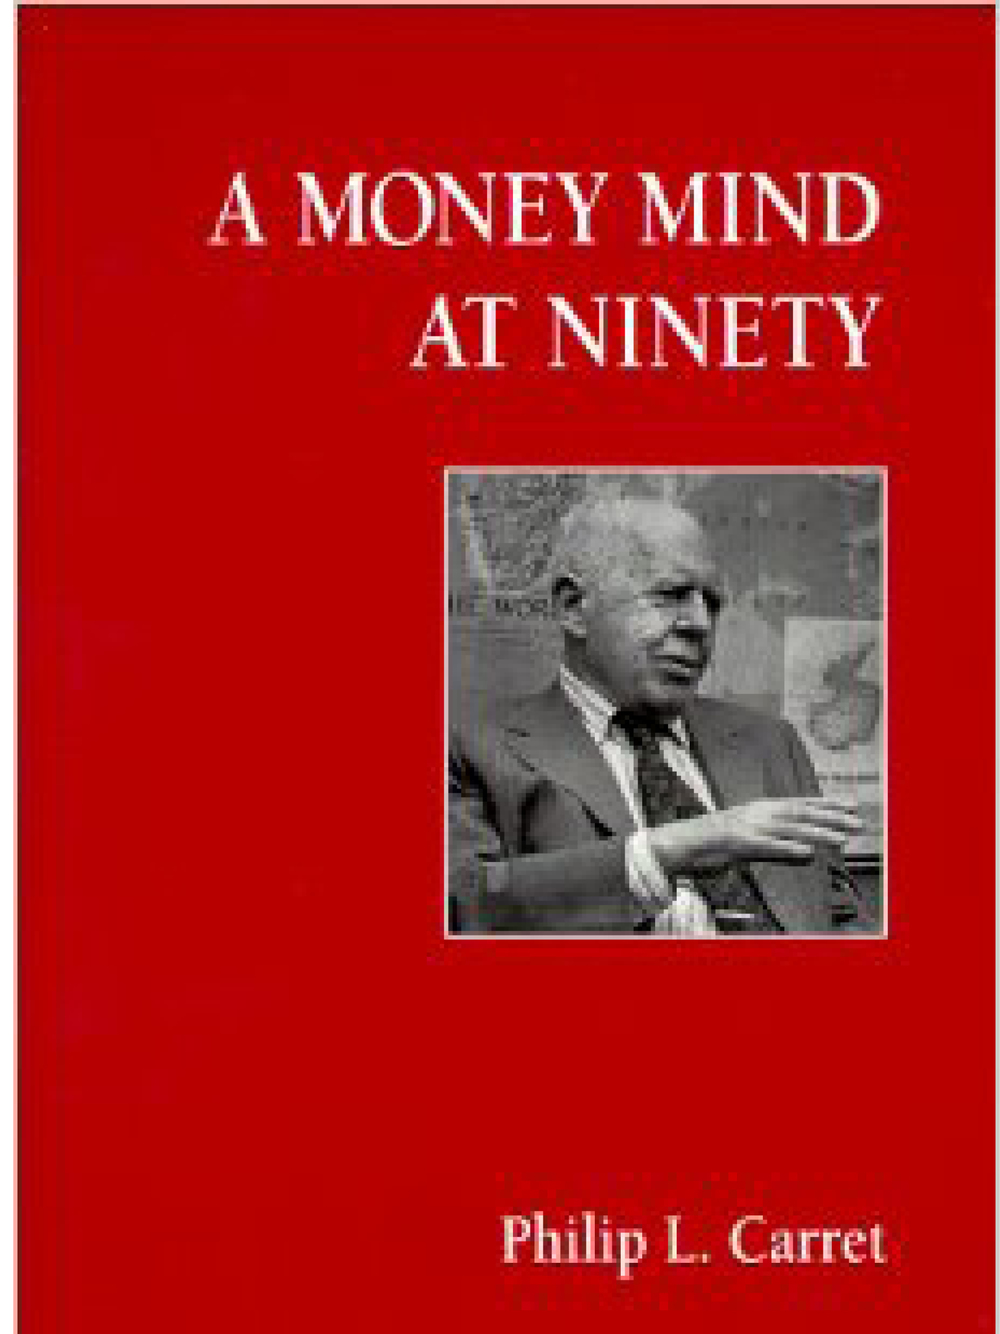 A Money Mind At Ninety. Philip L. Caret 1991